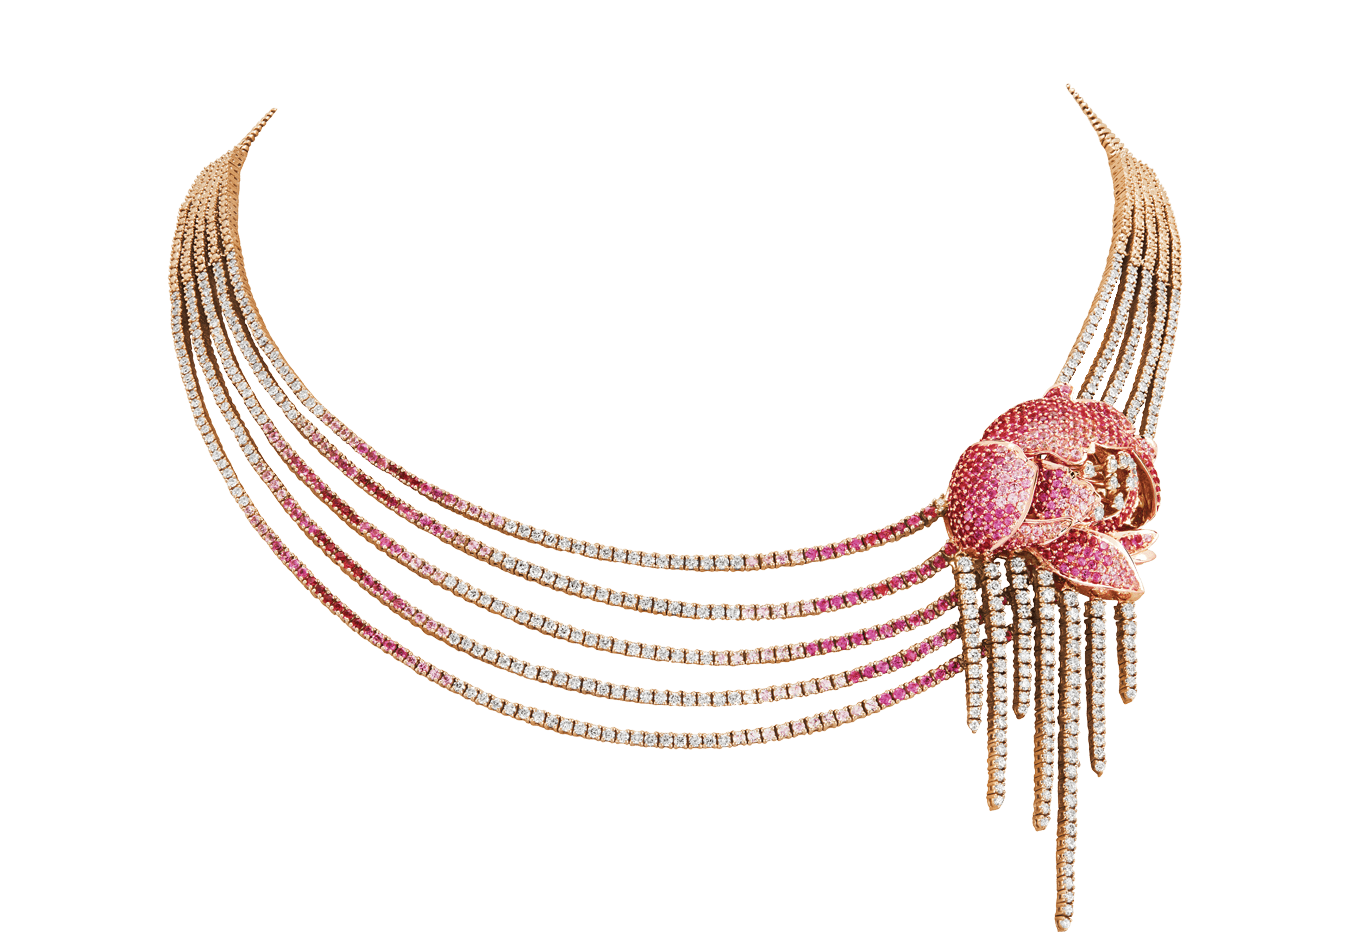 Png jewellers chinchwad. Zoya musee du luxe